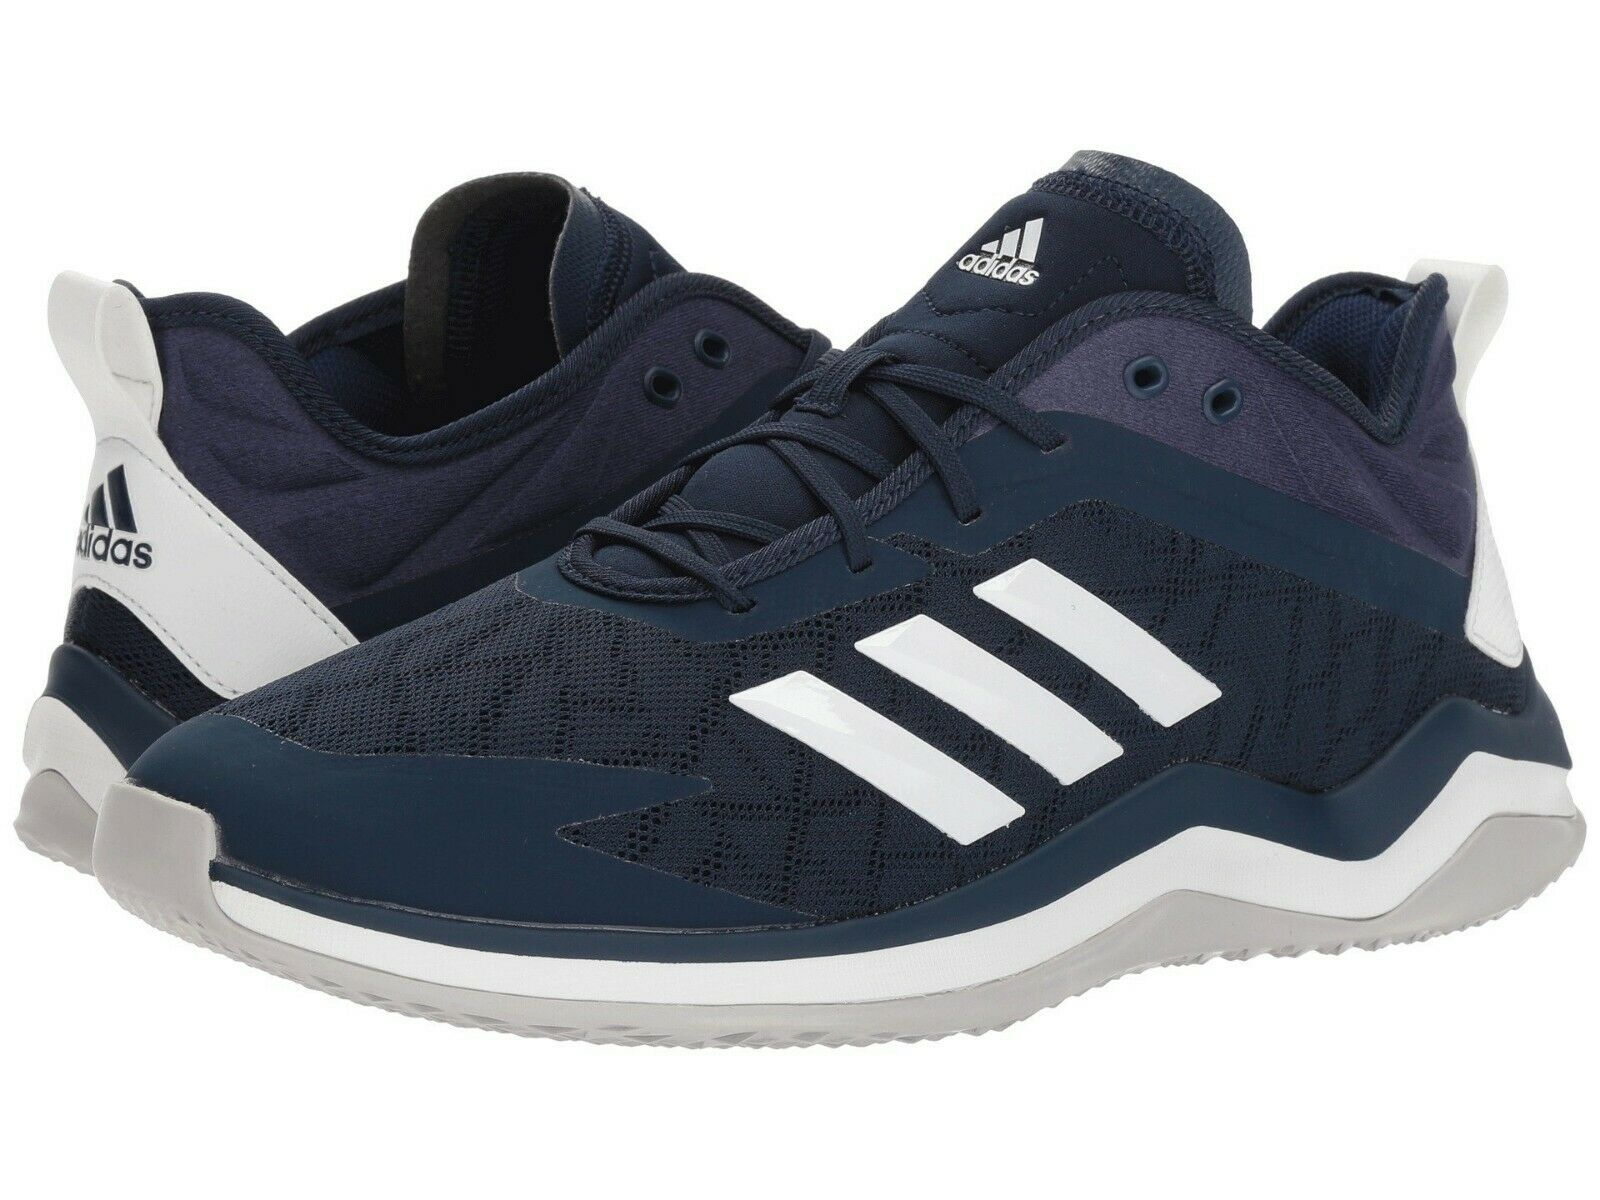 Adidas Speed Trainer 4 Men's Baseball Turf Trainer shoes Navy White colorway